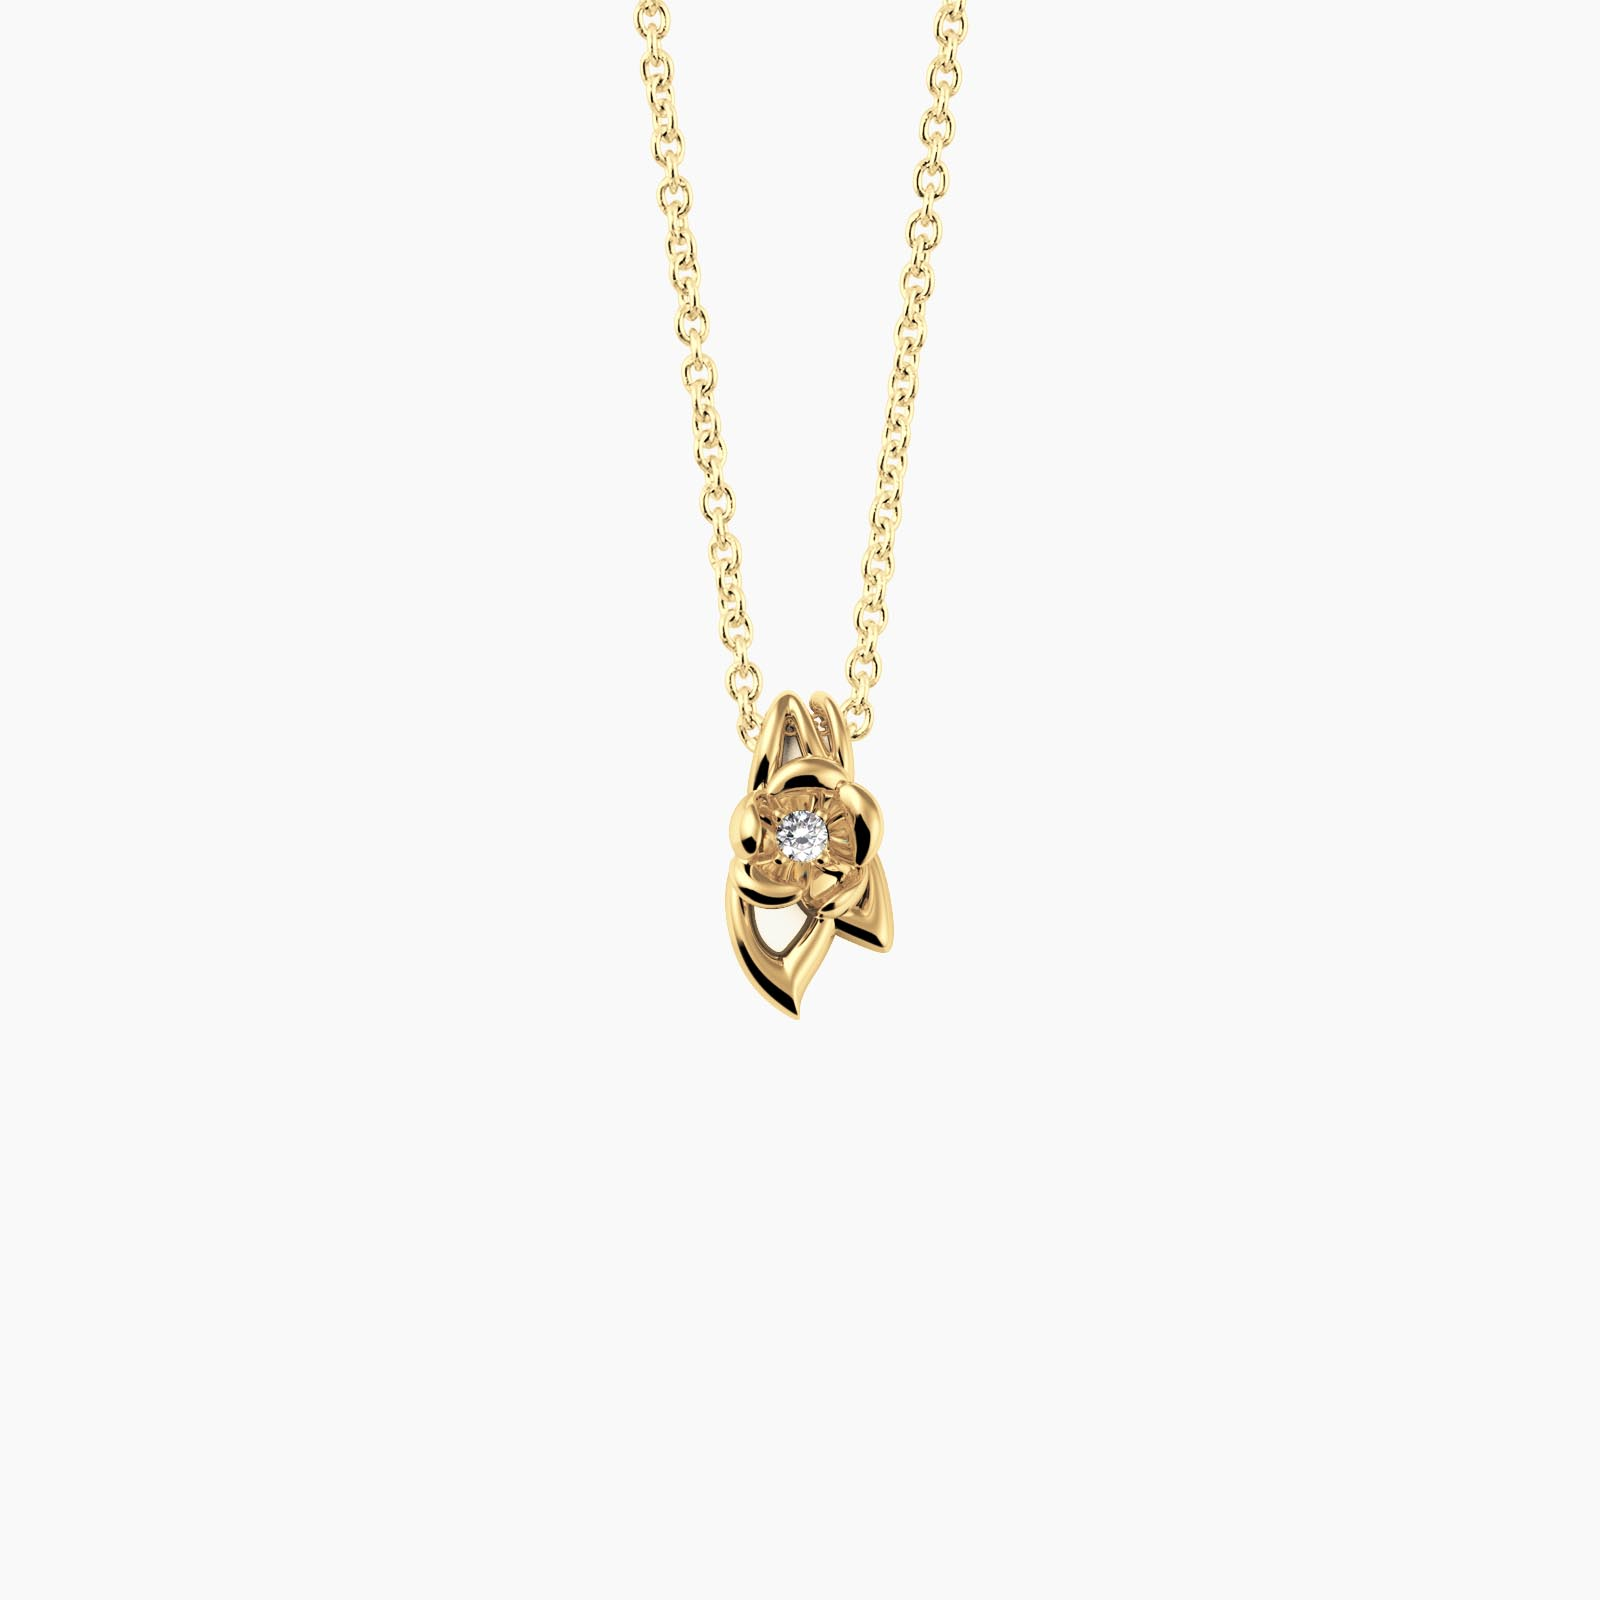 fiore Necklace Gold Plated - KAMPUSCH